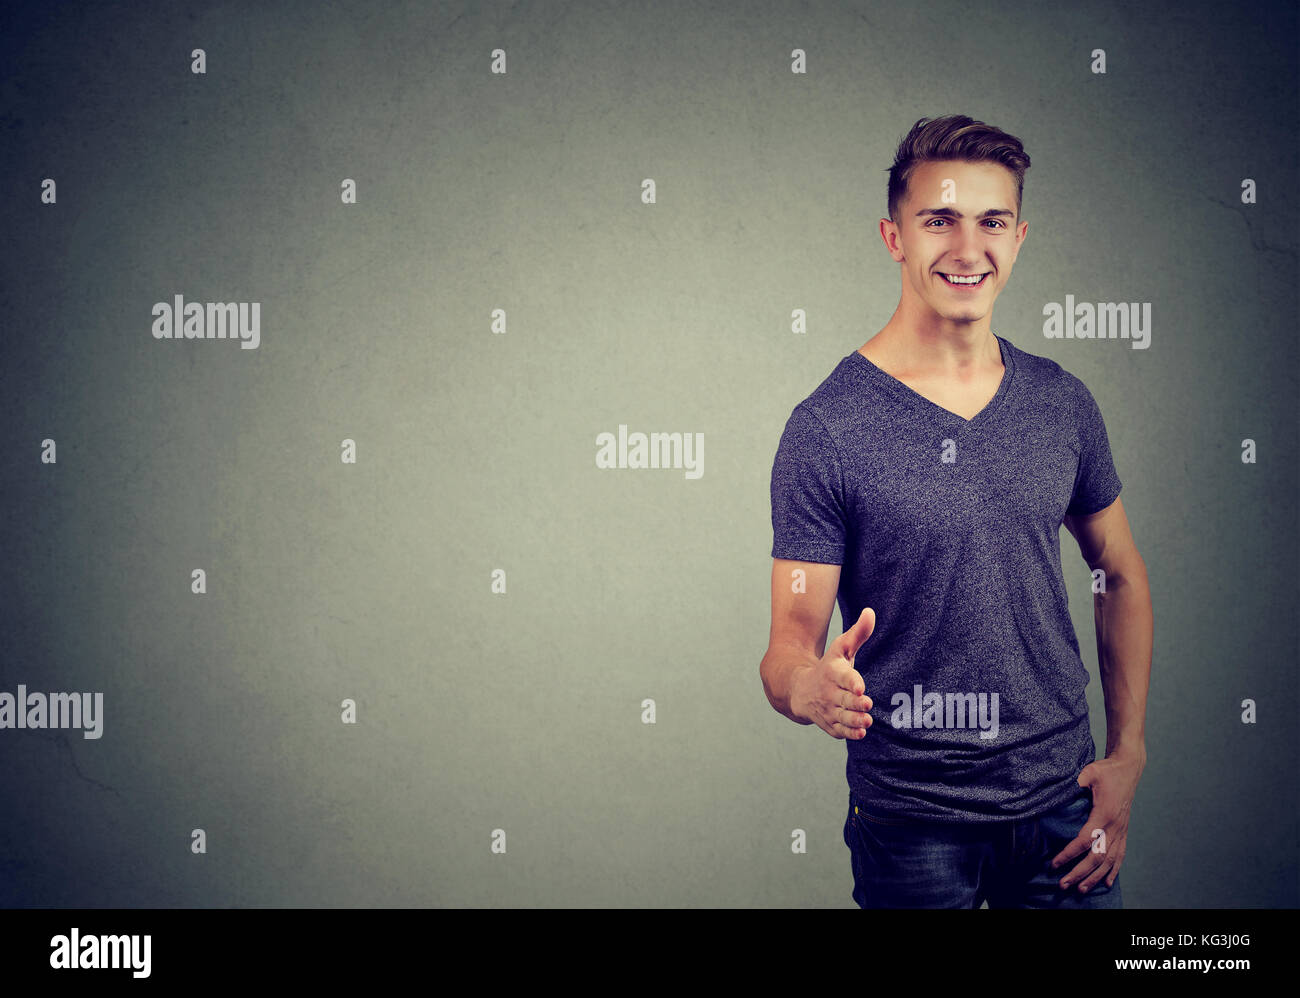 Smiling man in t-shirt holds out his hand for a handshake and looking at the camera over gray background - Stock Image